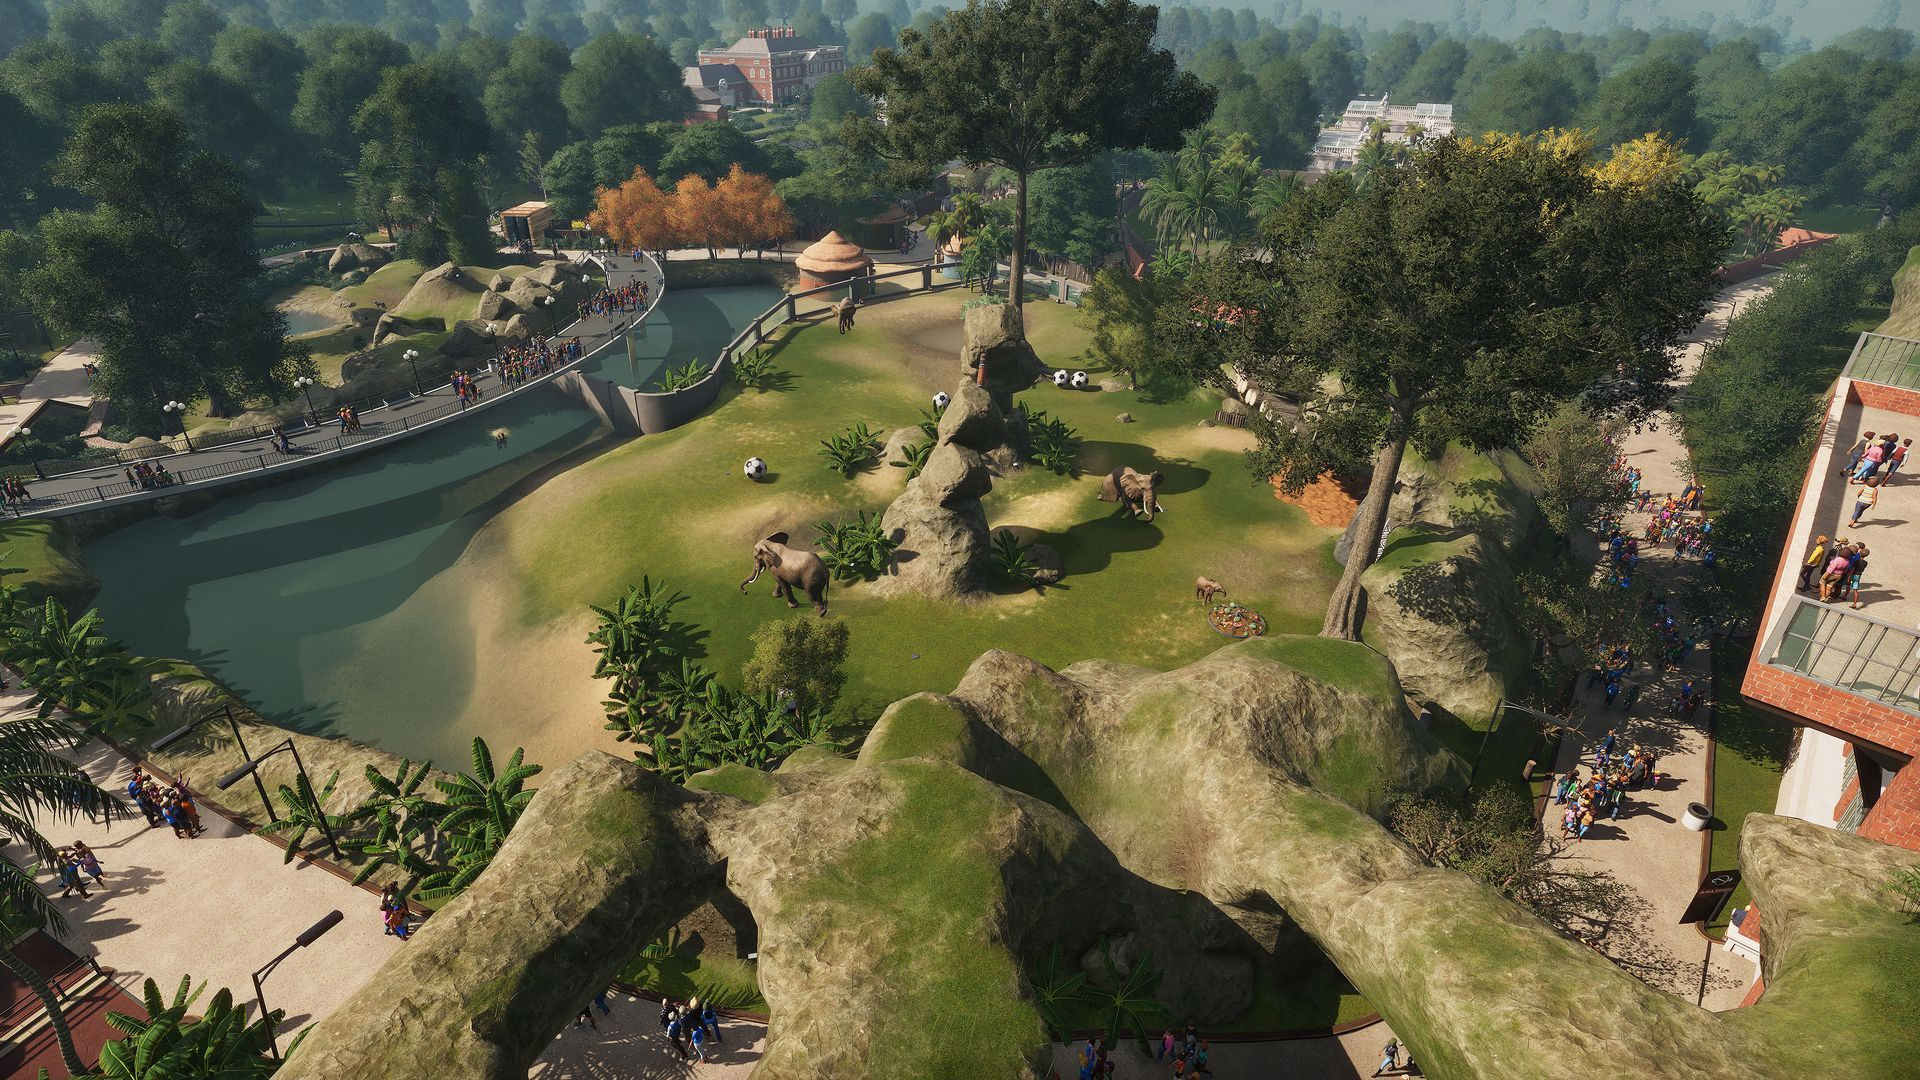 A zoomed-out view of Planet Zoo